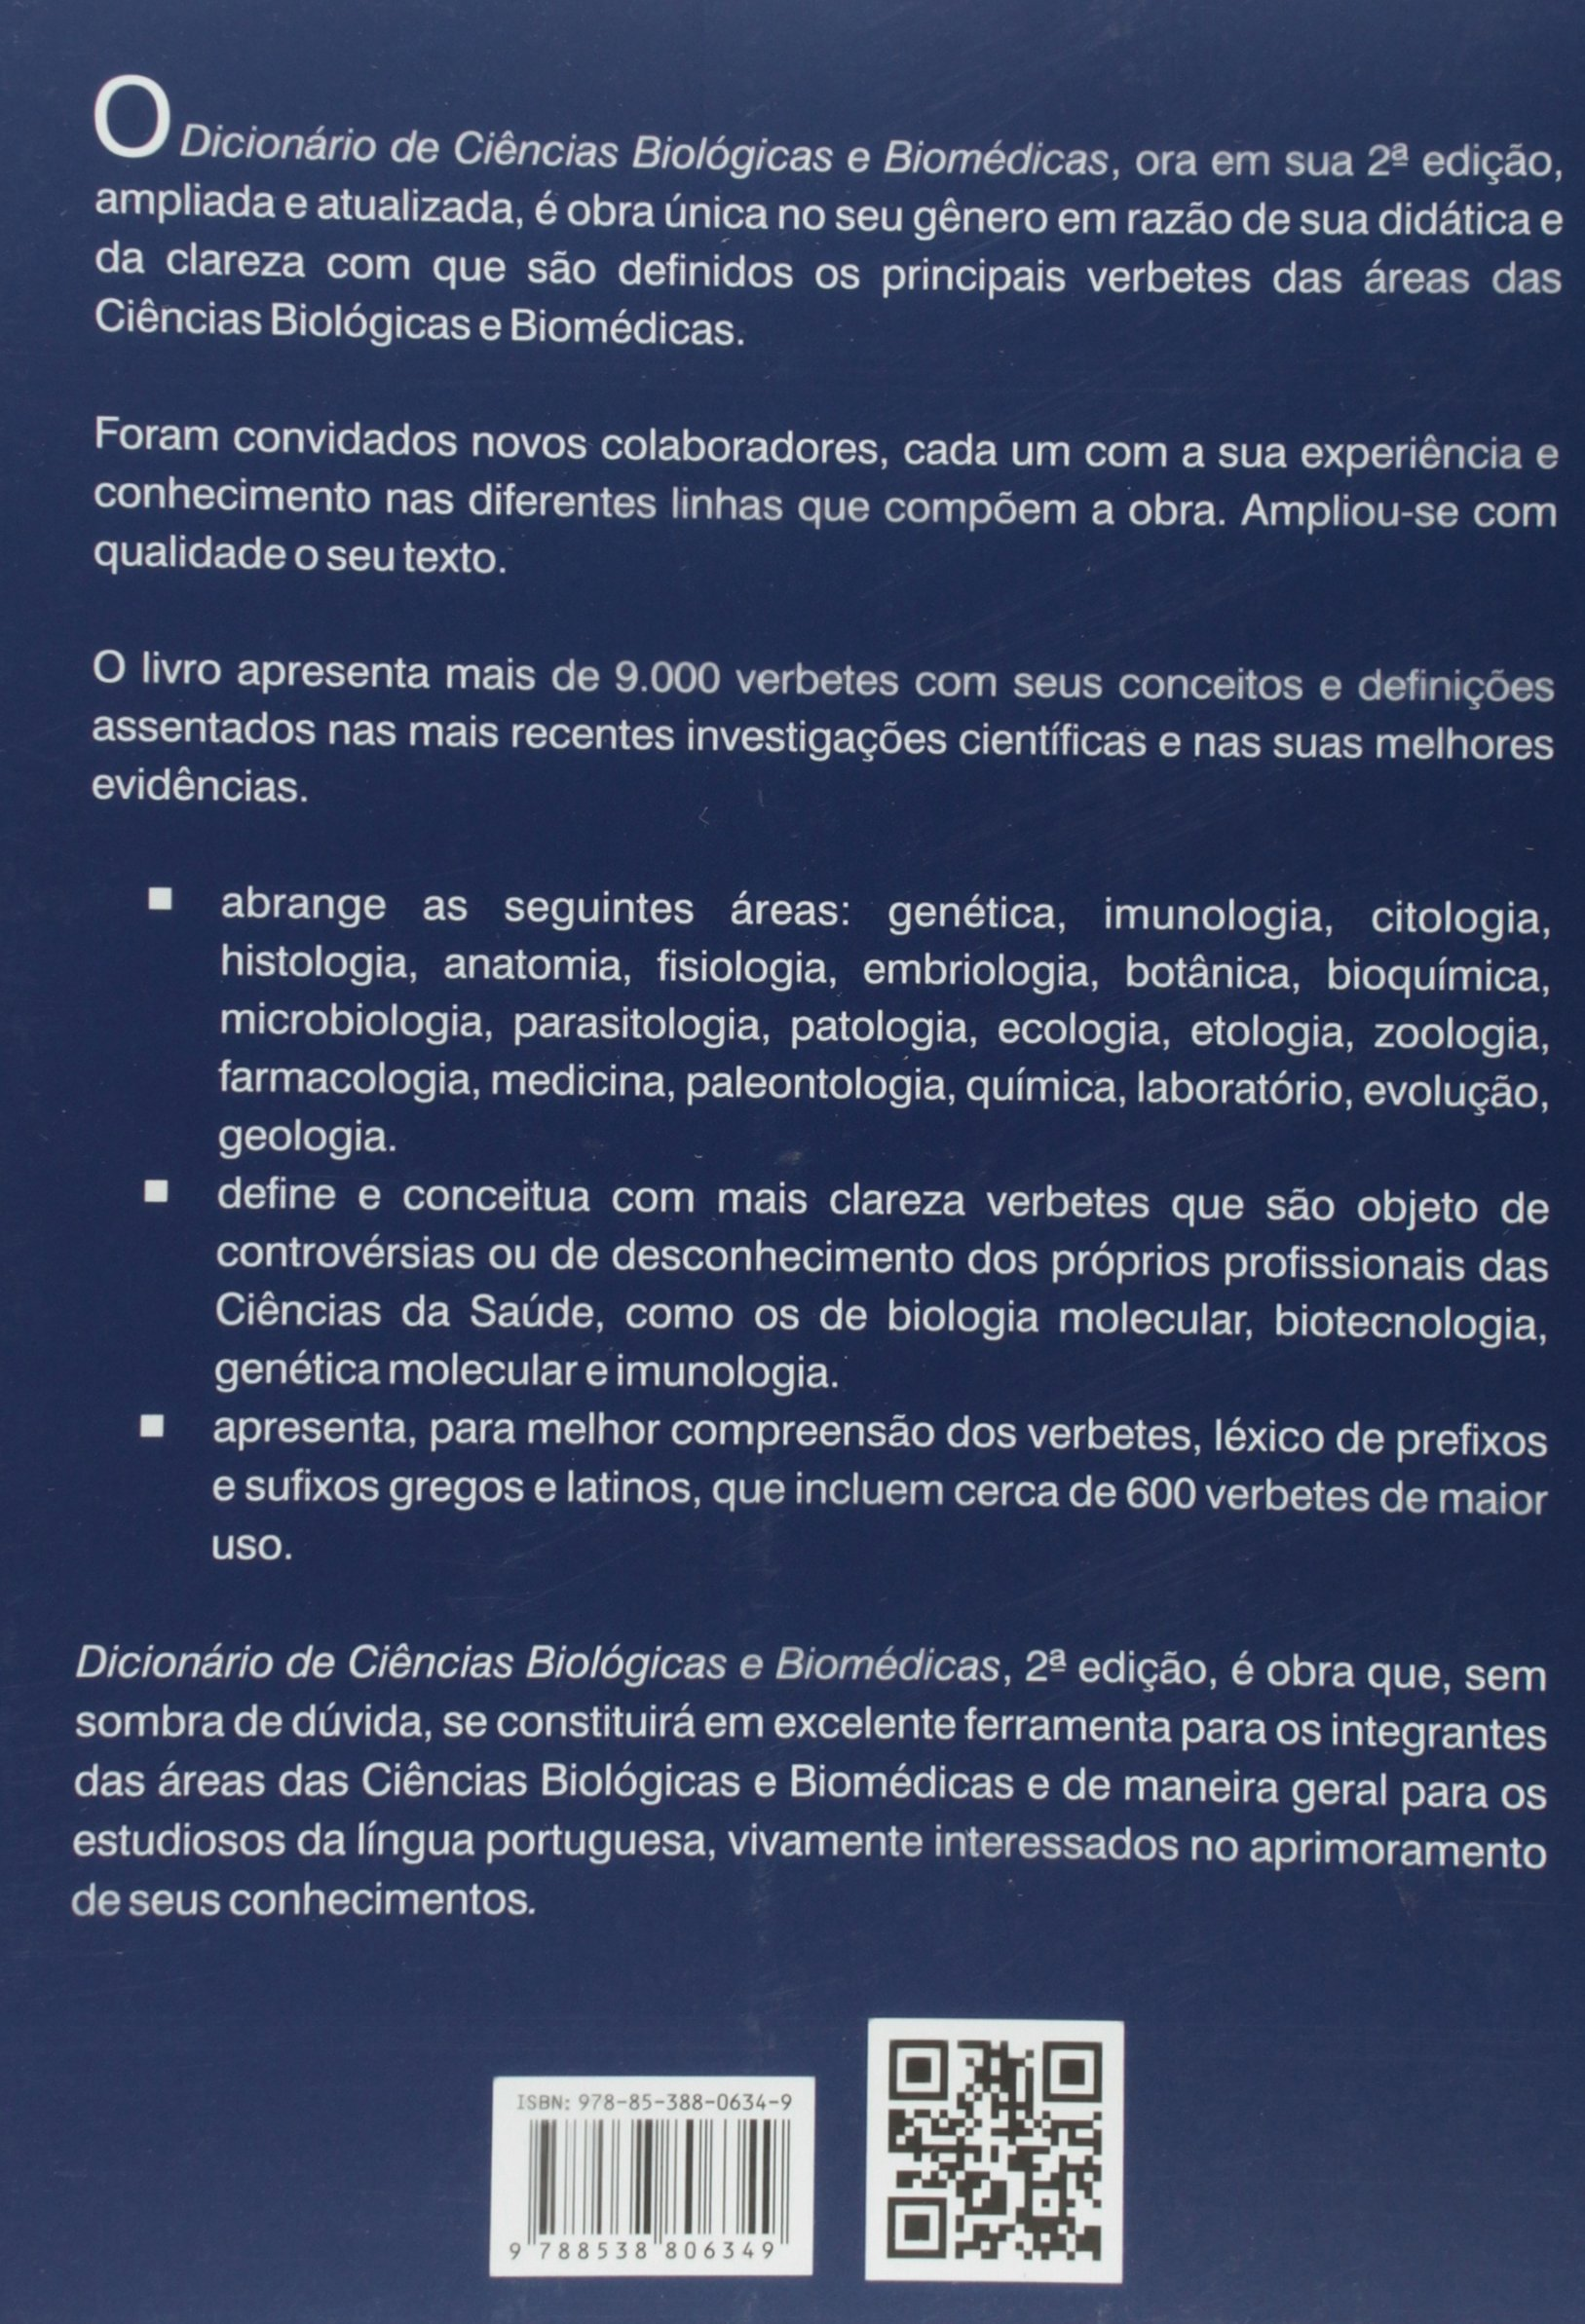 Dicionrio De Cincias Biolgicas E Biomdicas Marcos Marreiro Villela 9788538806349 Amazon Books